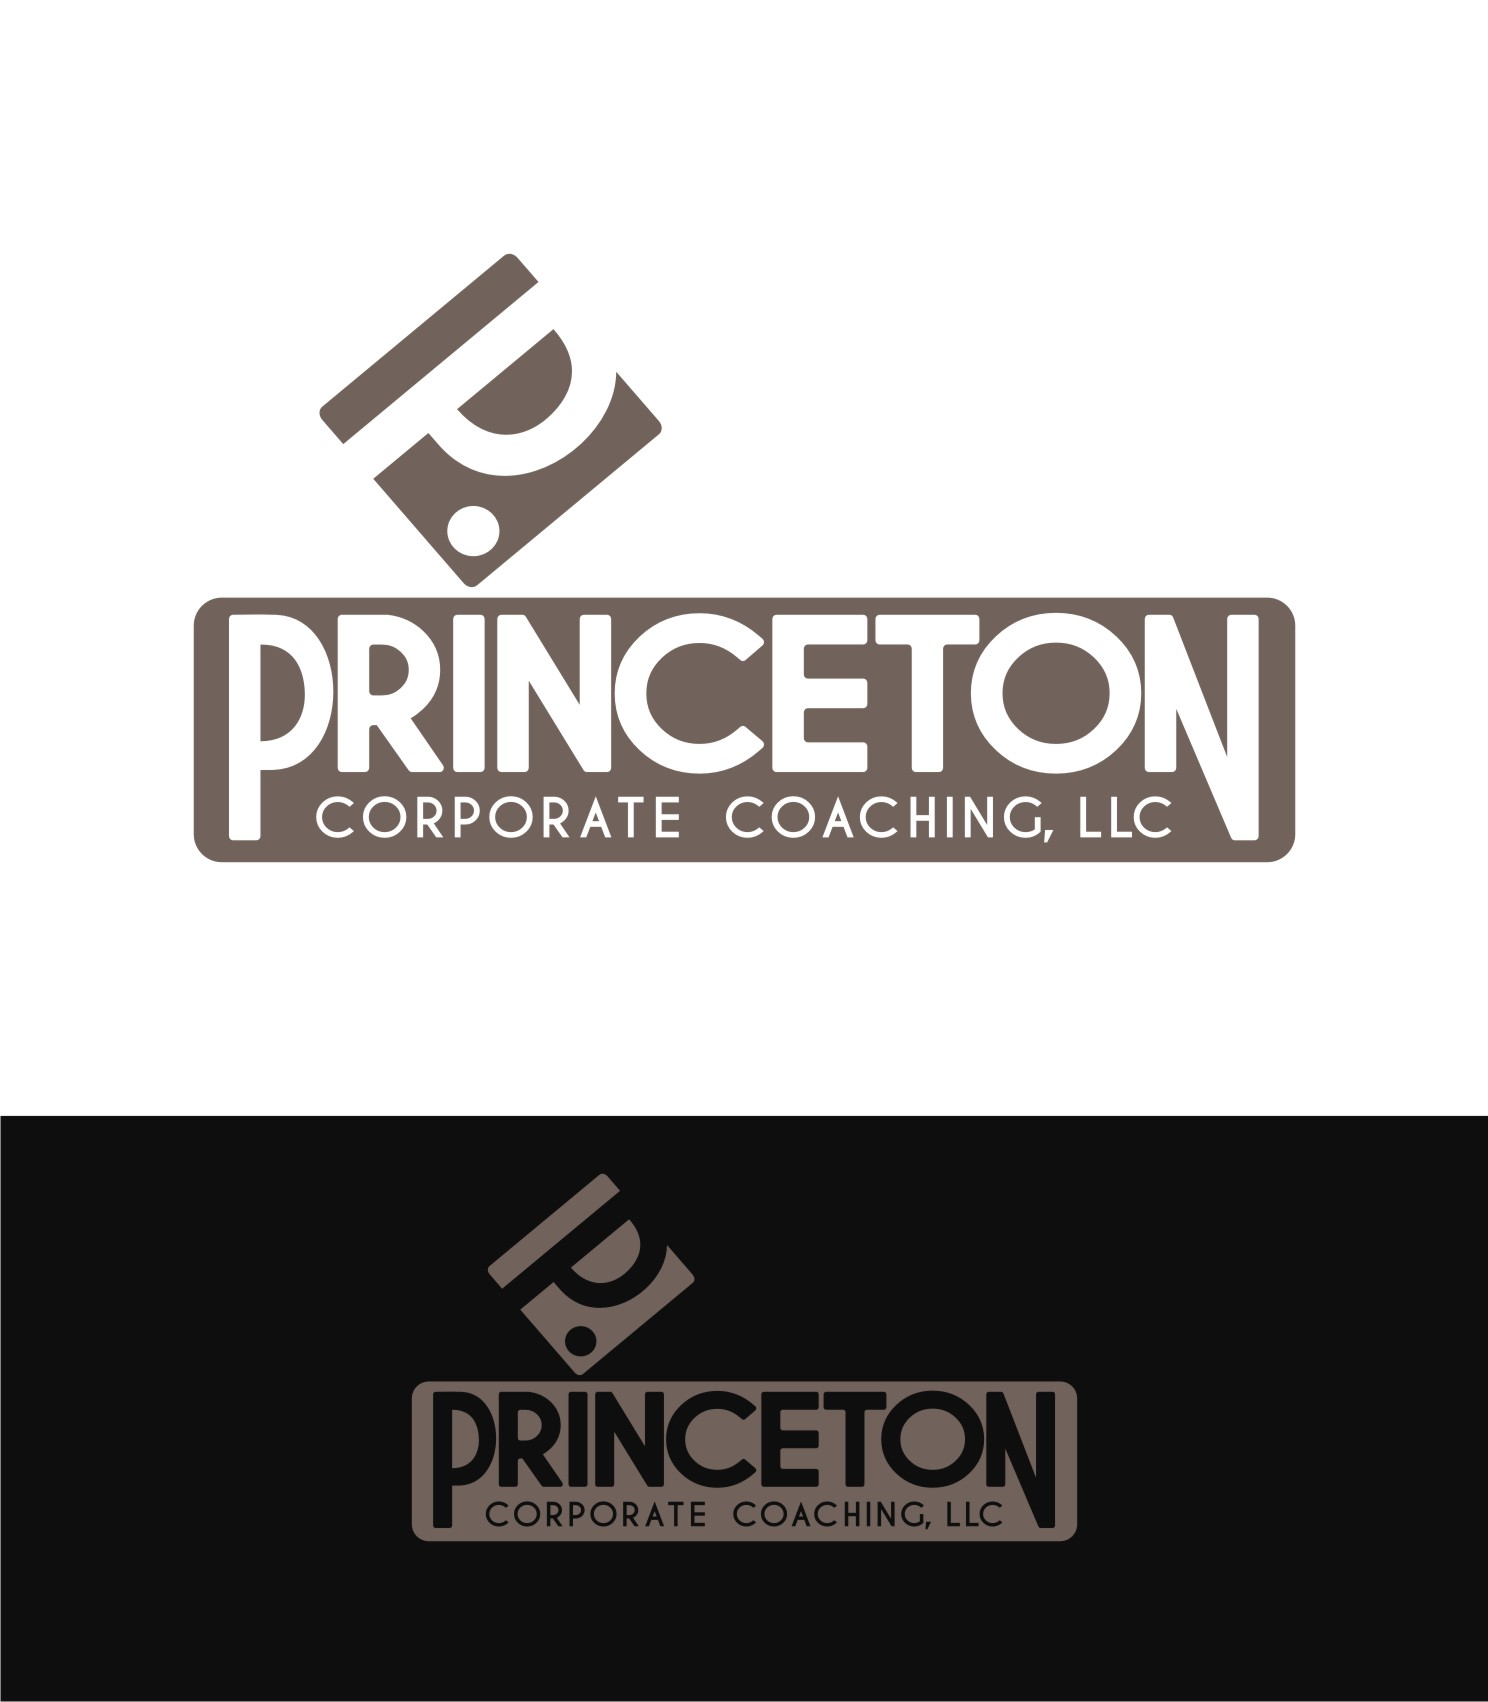 Logo Design by Private User - Entry No. 78 in the Logo Design Contest Unique Logo Design Wanted for Princeton Corporate Coaching, LLC.